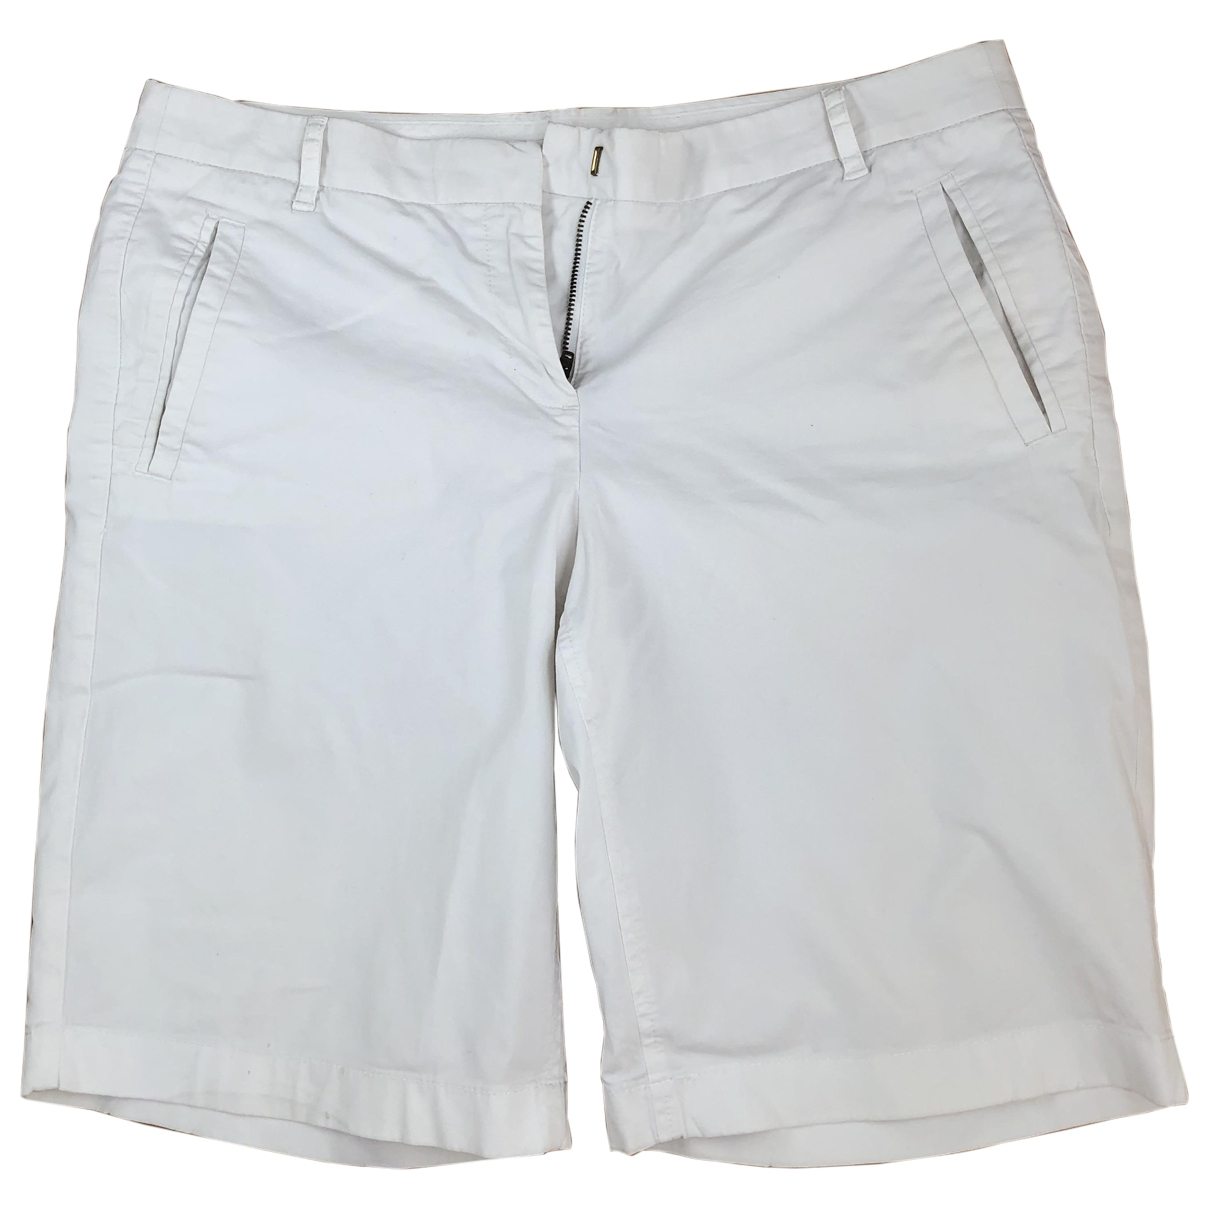 J.crew \N White Cotton - elasthane Shorts for Women 44 IT